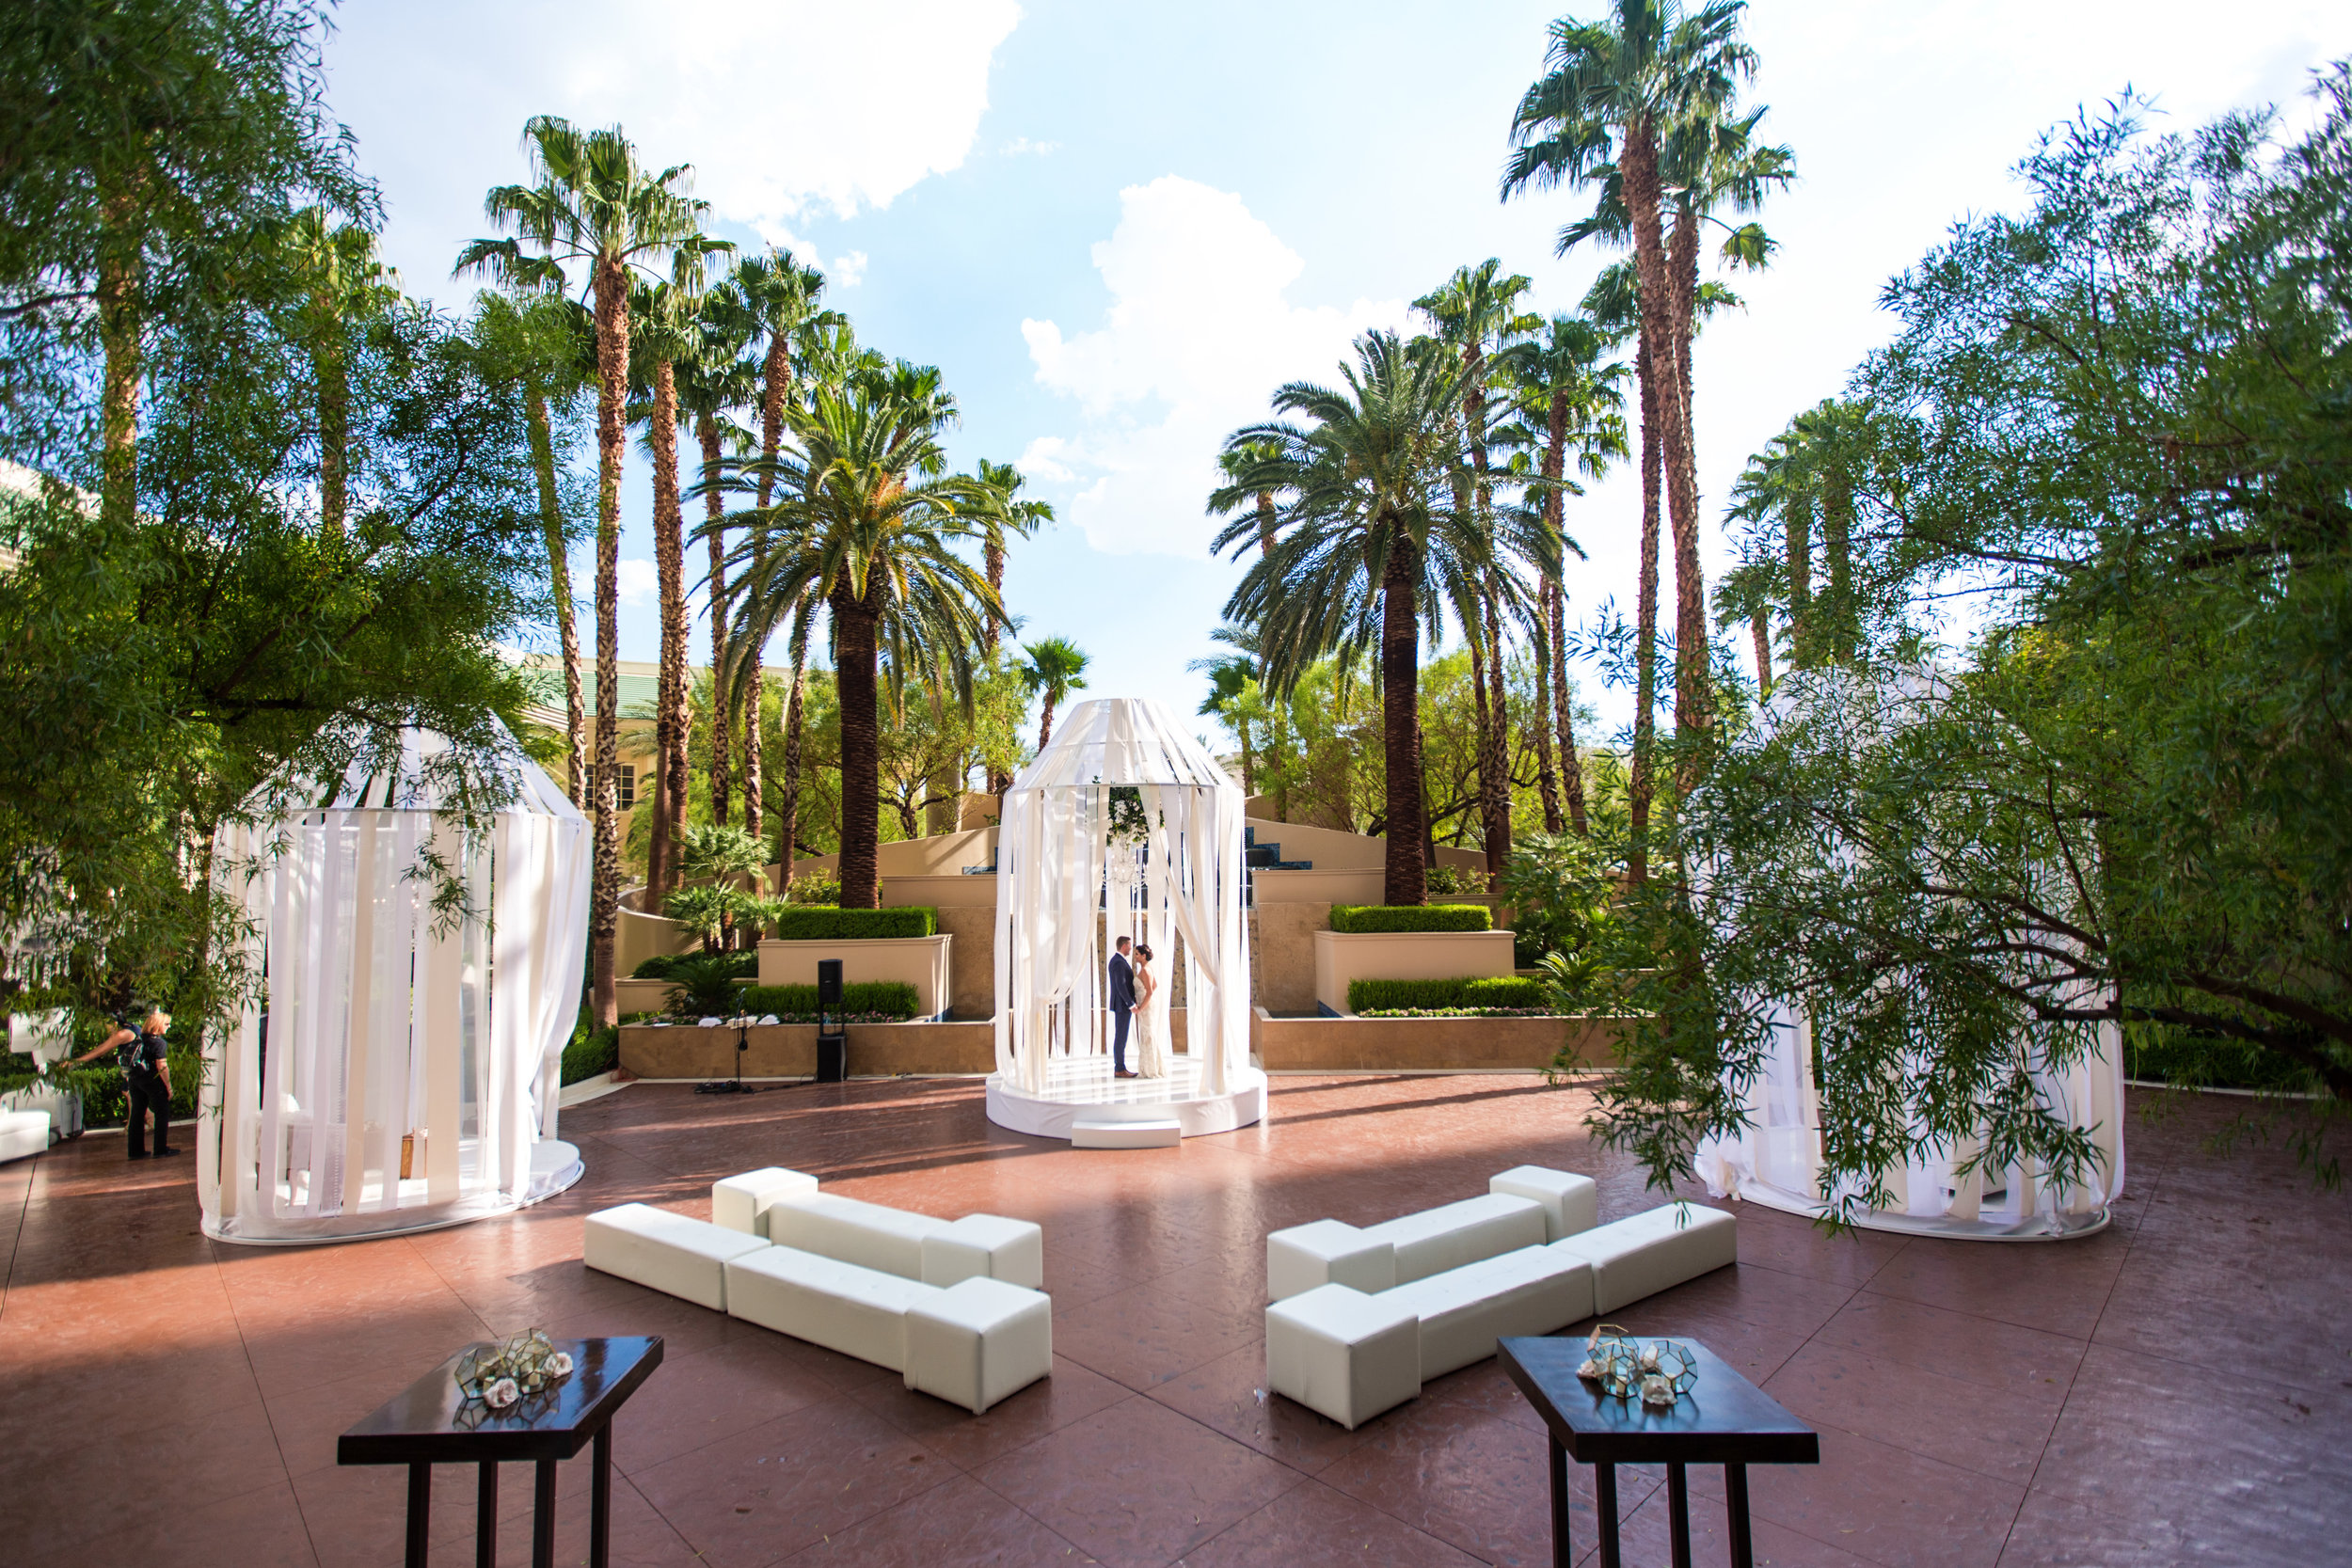 OUtdoor wedding ceremony with oversized bird cages.Wedding Planning by  Andrea Eppolito Events  · Photography by  Shandro Photo   · Wedding Venue  Four Seasons Las Vegas  · Floral and Decor by  Destination by Design  · Chandeliers and Lighting by  LED Unplugged